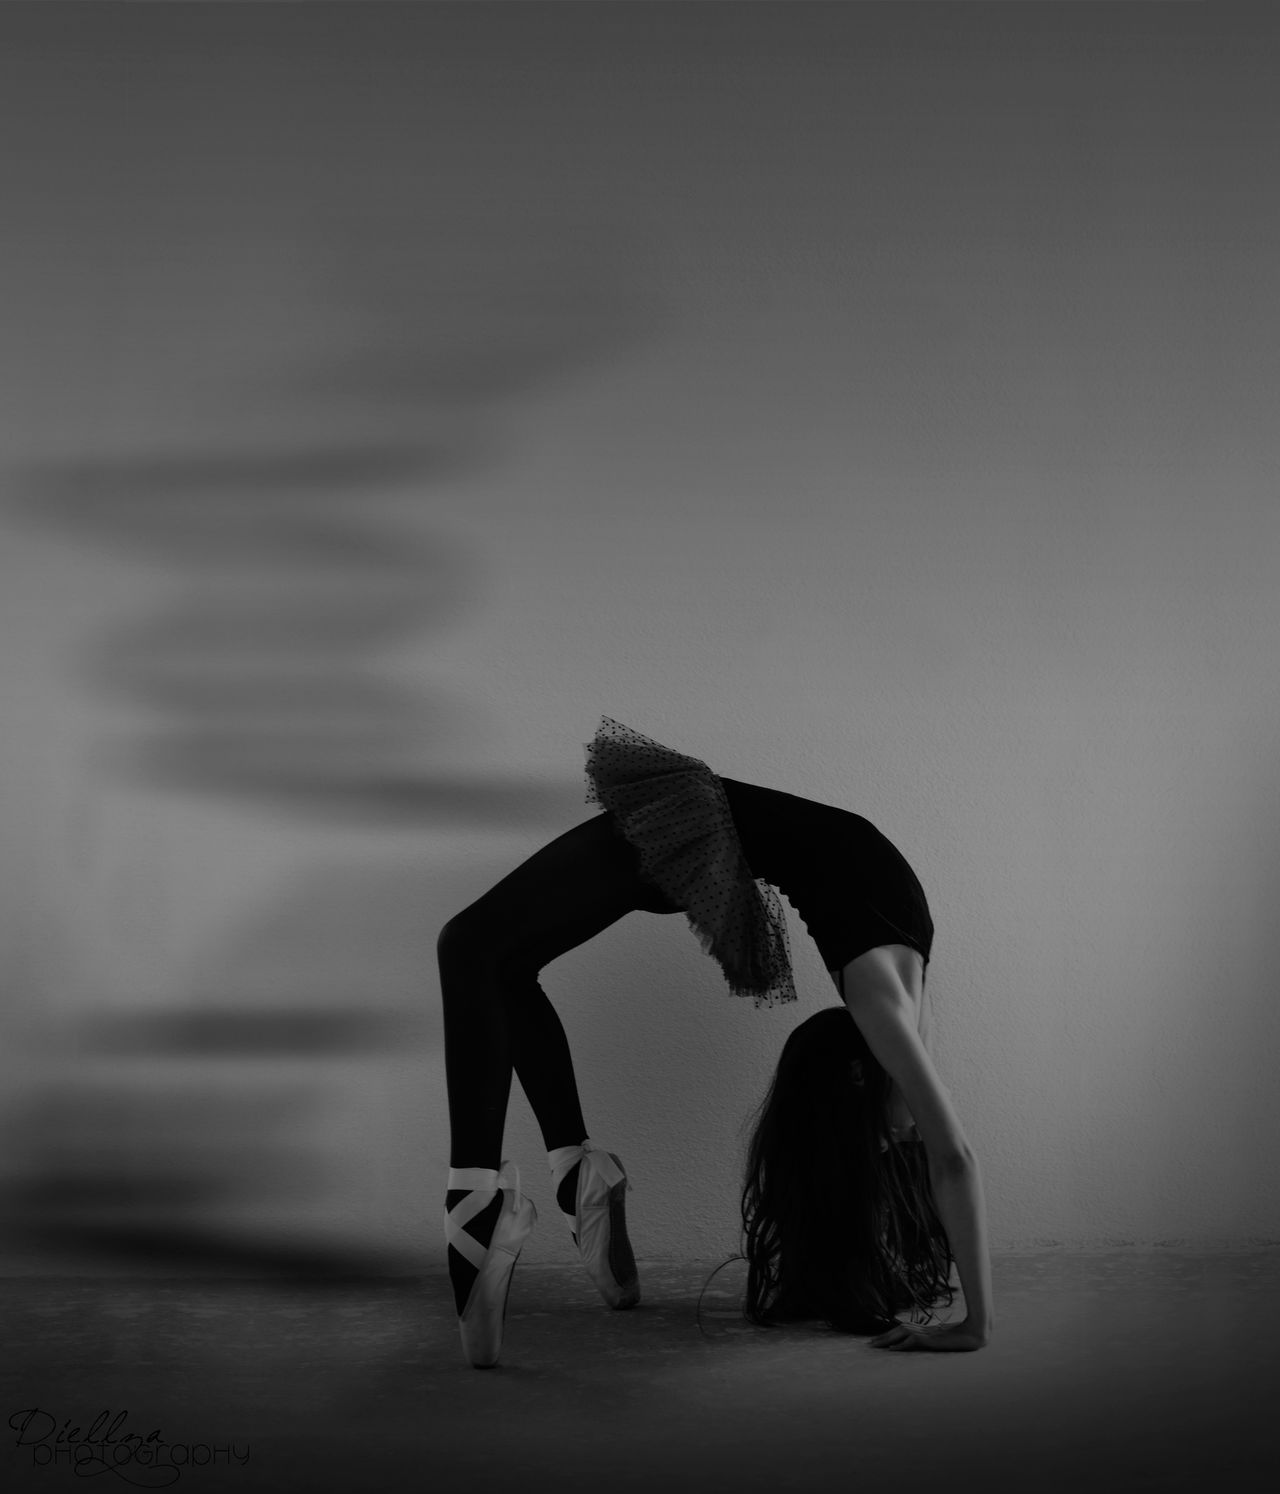 This picture consist an unusual ballerina with her hair untied, showing sadness while she doesn't stop the dance, meaning she doesn't stop living even though she's facing a deep sadness. Ballerina Ballet Black And White Conceptual Conceptual Photography  Contemporary Contemporary Art Dance Dancing Girl Hair Photographer Photography Sadness First Eyeem Photo